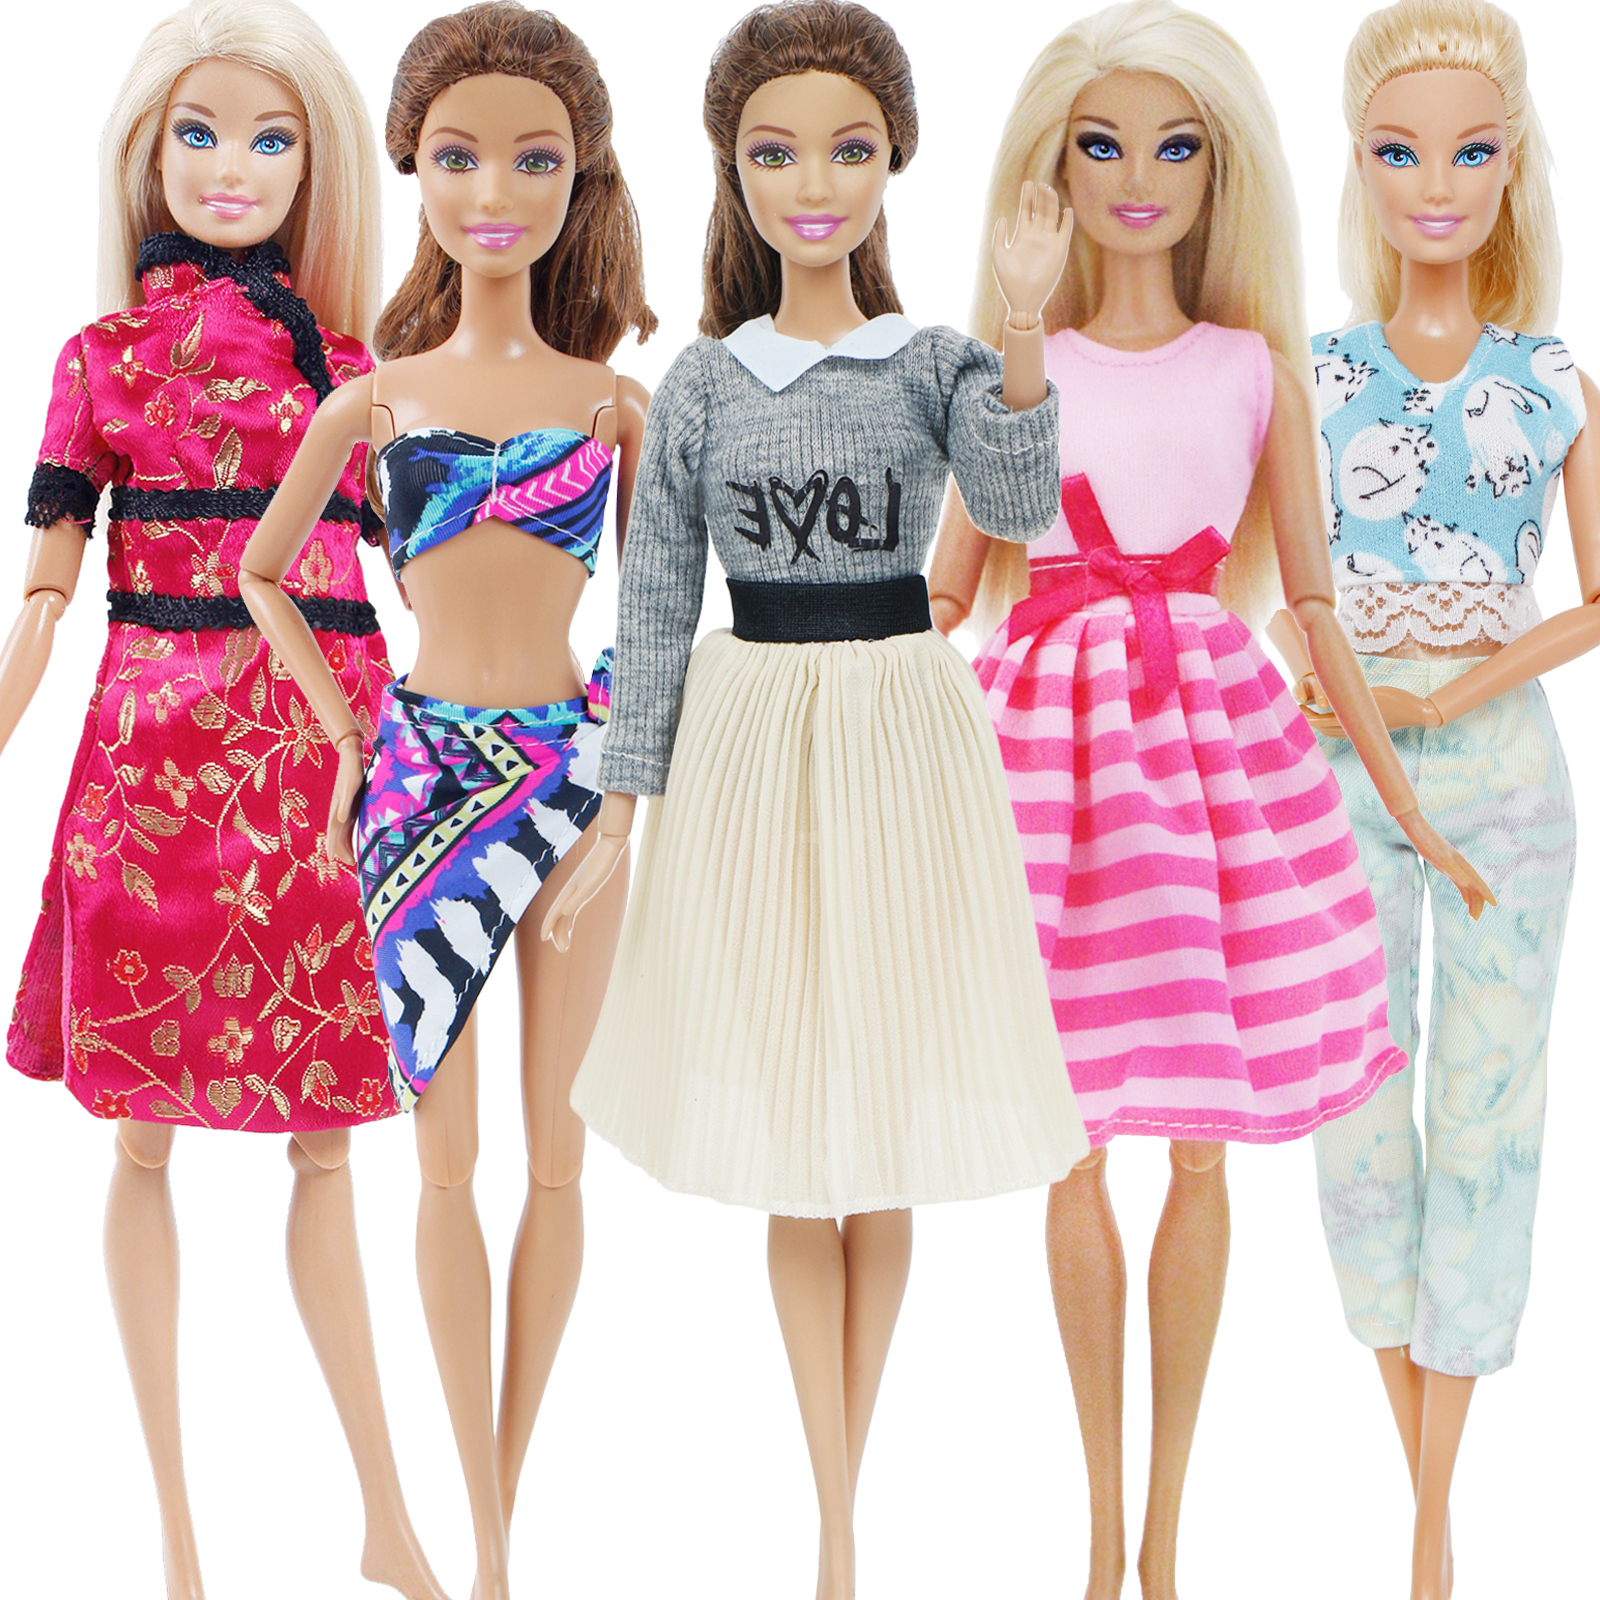 5x Lady Daily Doll Outfits Lot Swimsuits Sweater Mini Skirt Pants Vest Dress Clothes For Barbie Doll House Accessories Toy Set